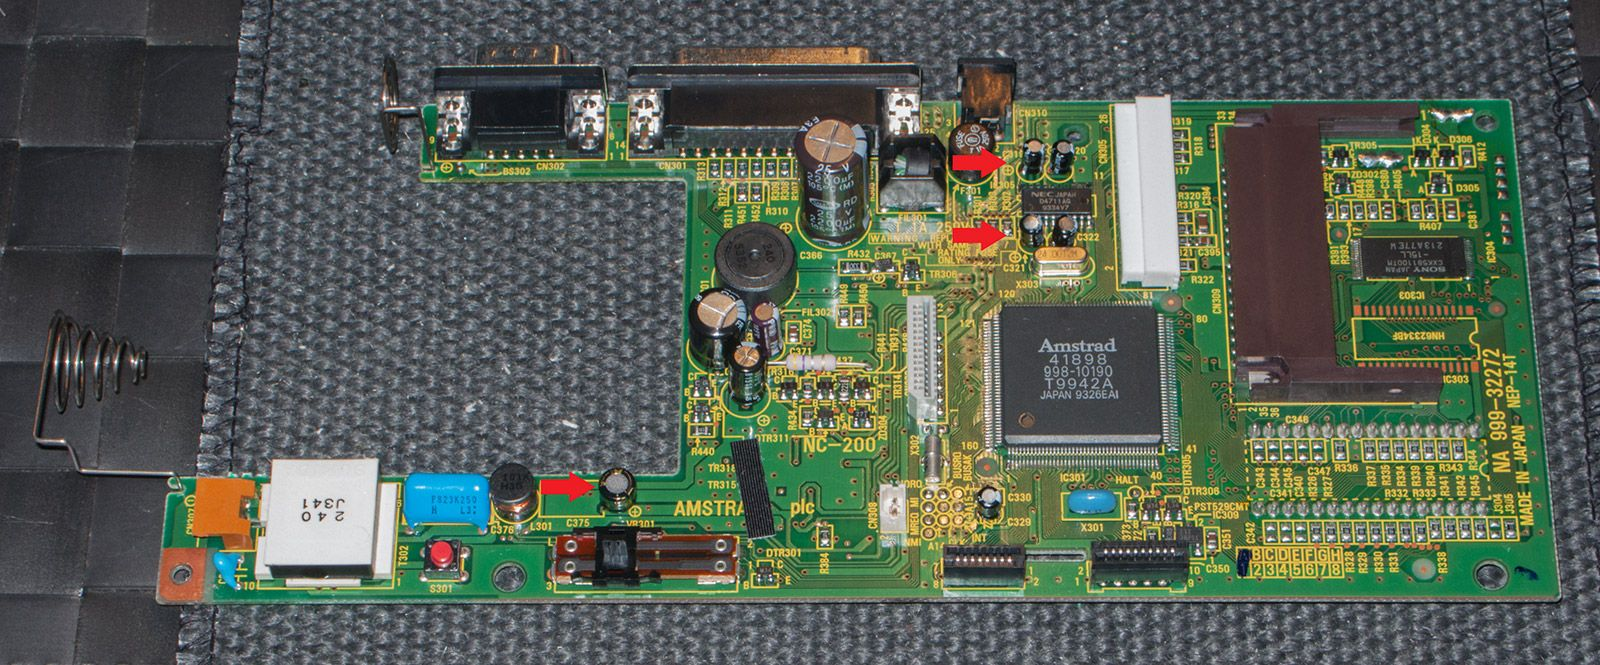 mainboard of the Amstrad Notepad NC200